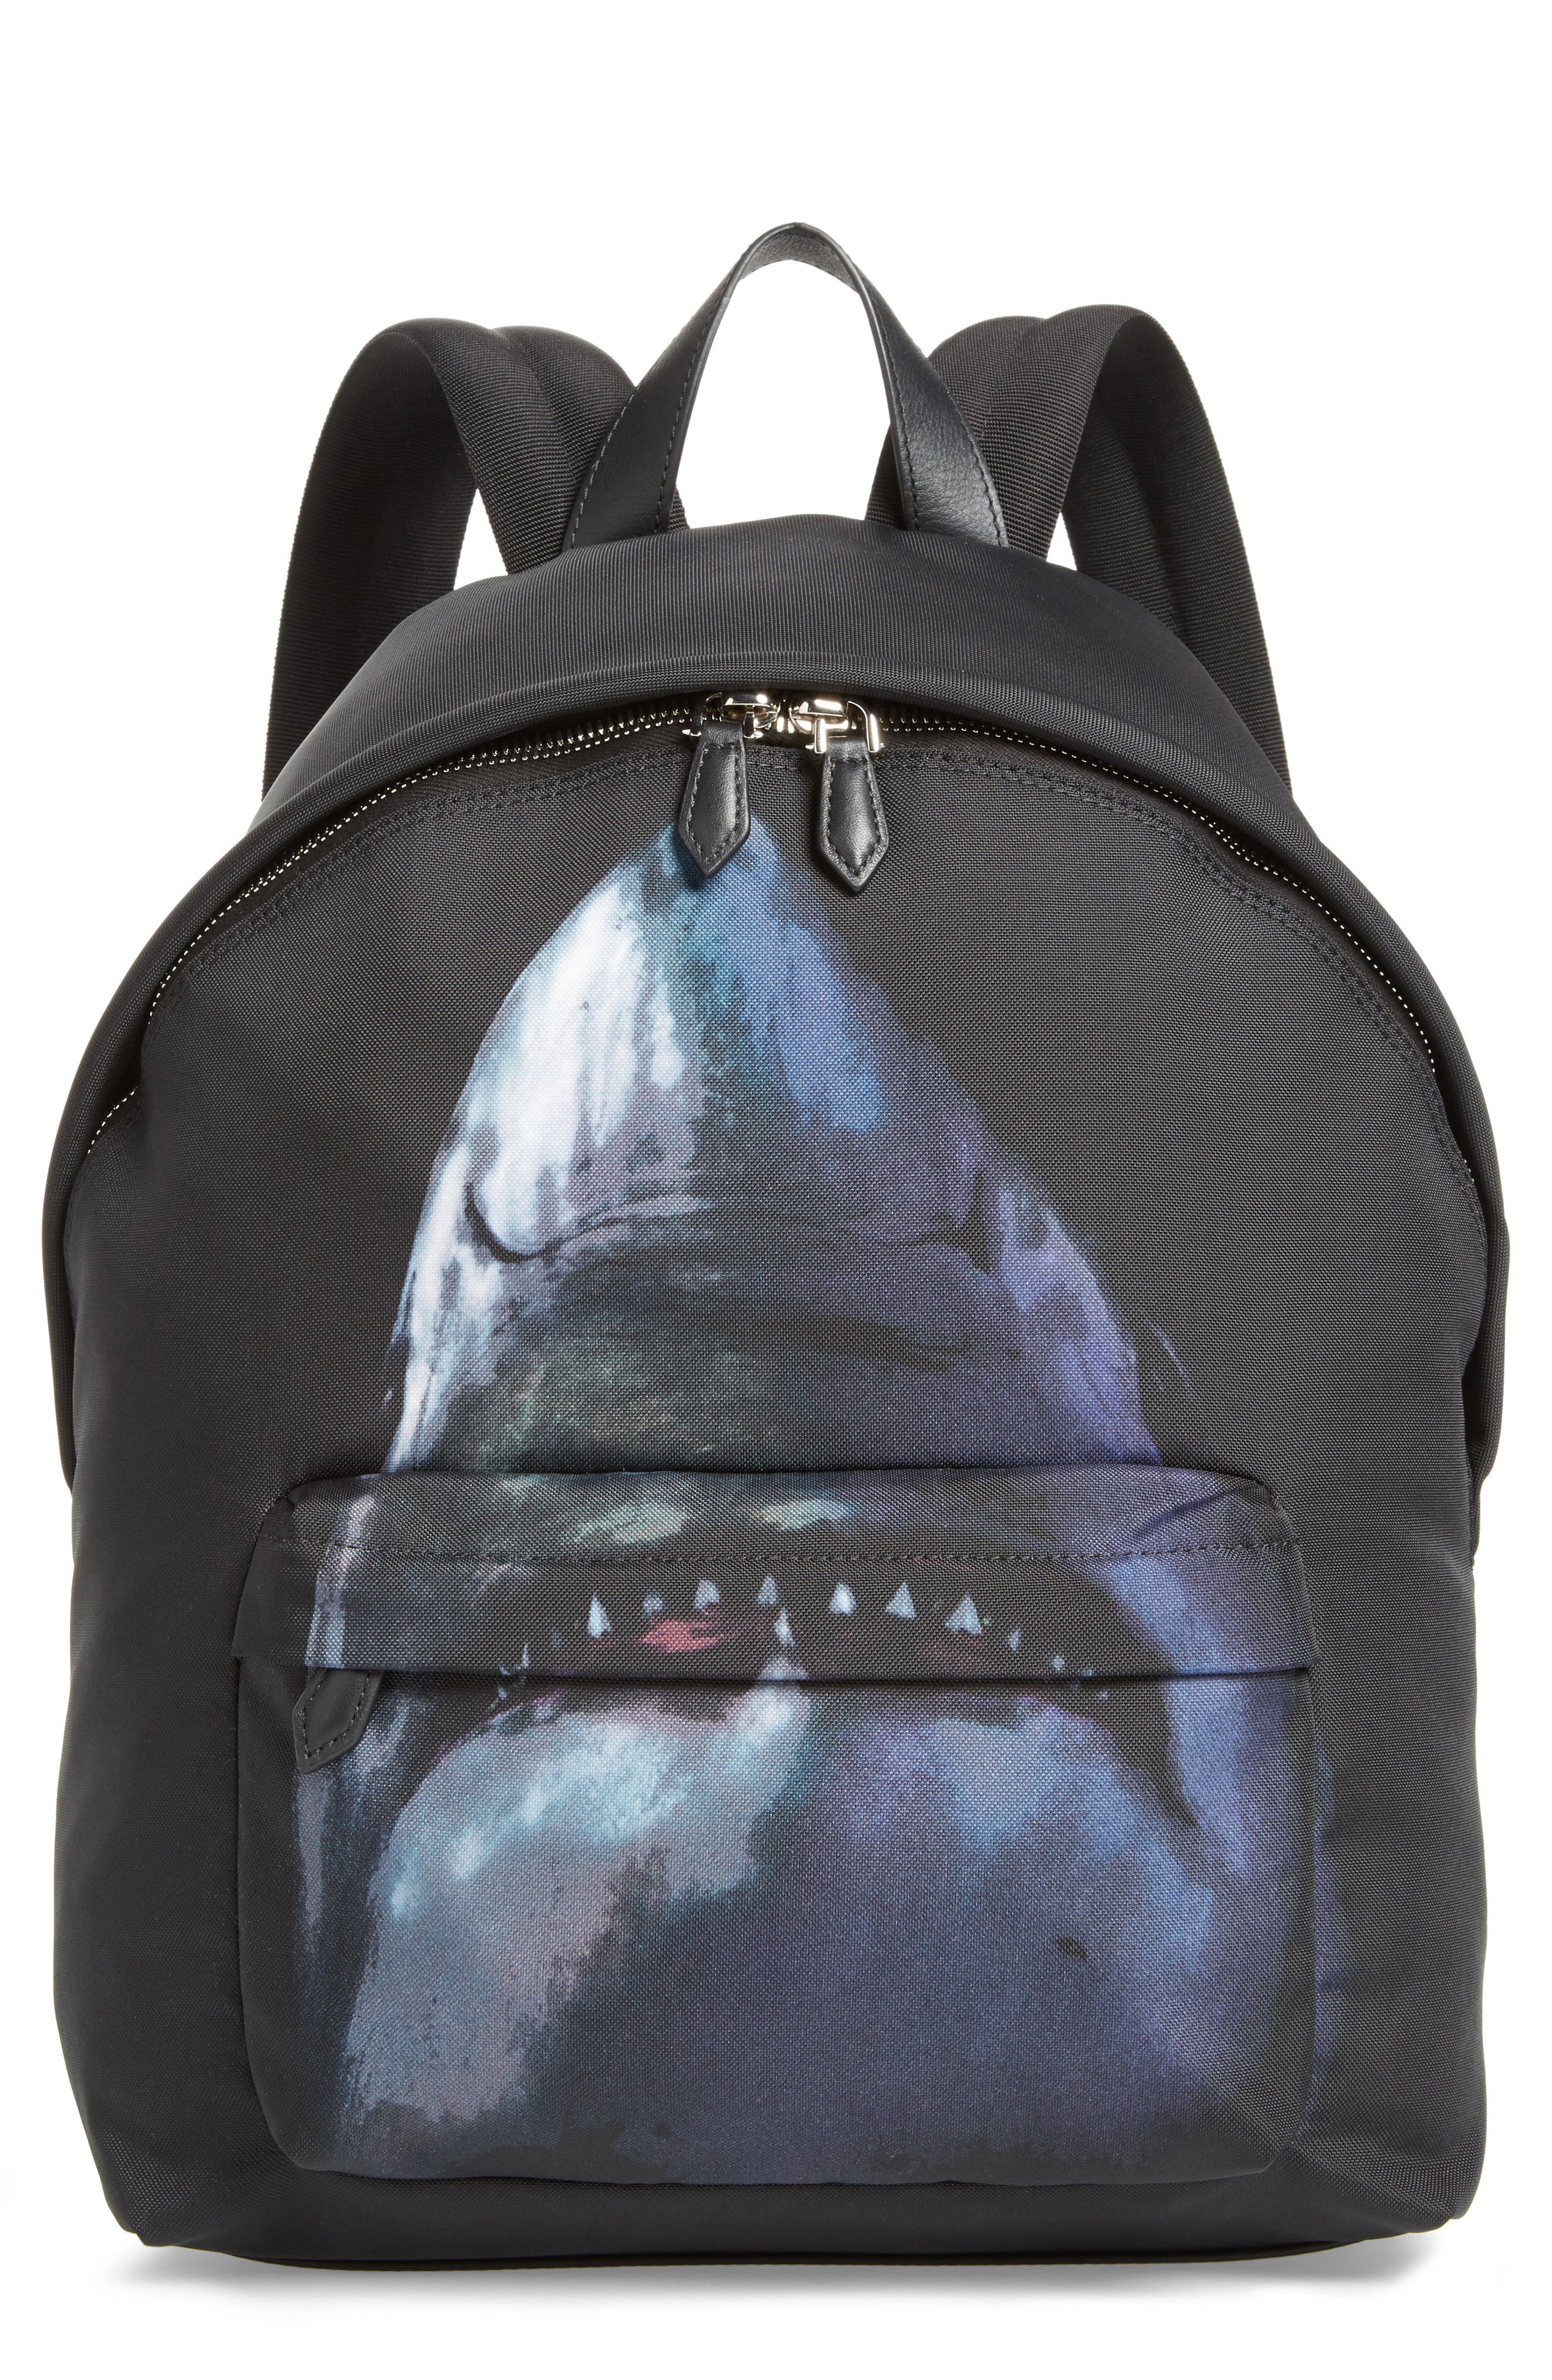 Shark Print Backpack,                         Main,                         color, MULTICOLORED